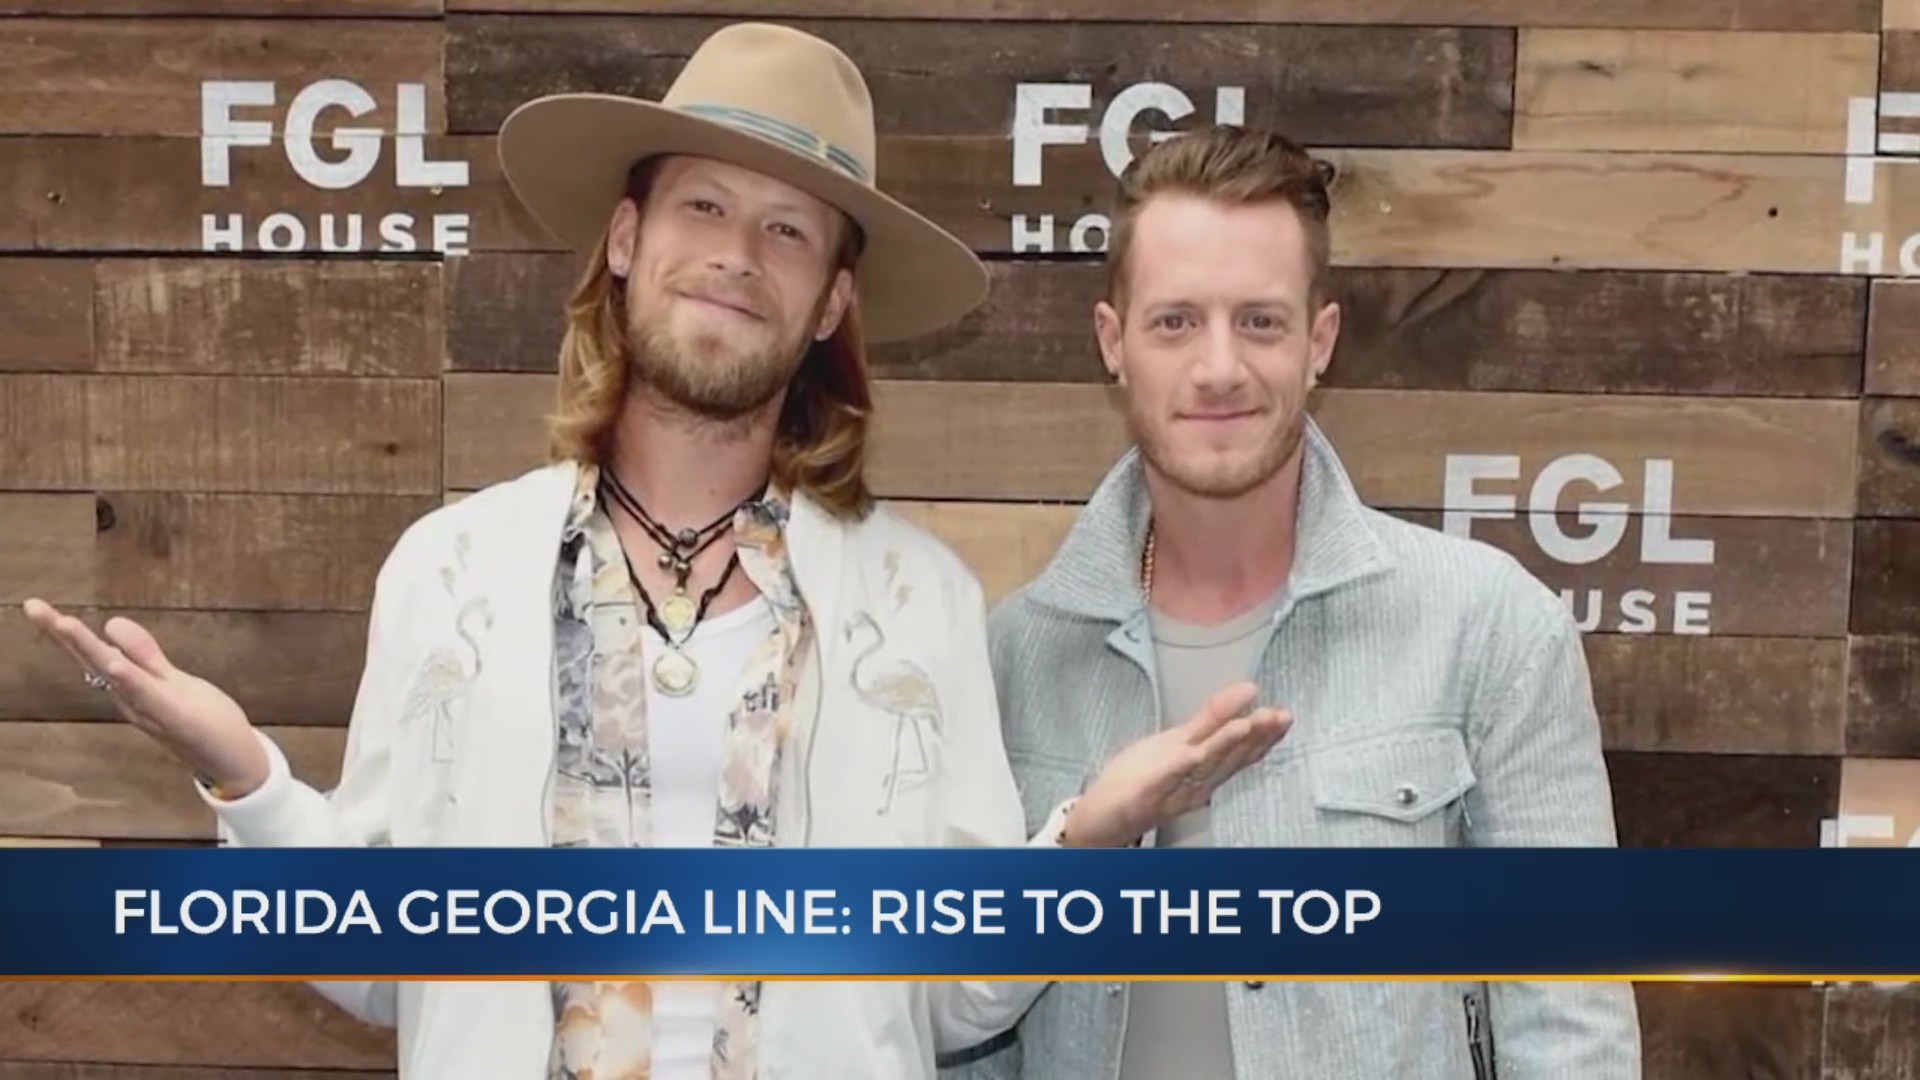 Florida_Georgia_Line__Rise_to_the_Top_9_20181112234224-873703986